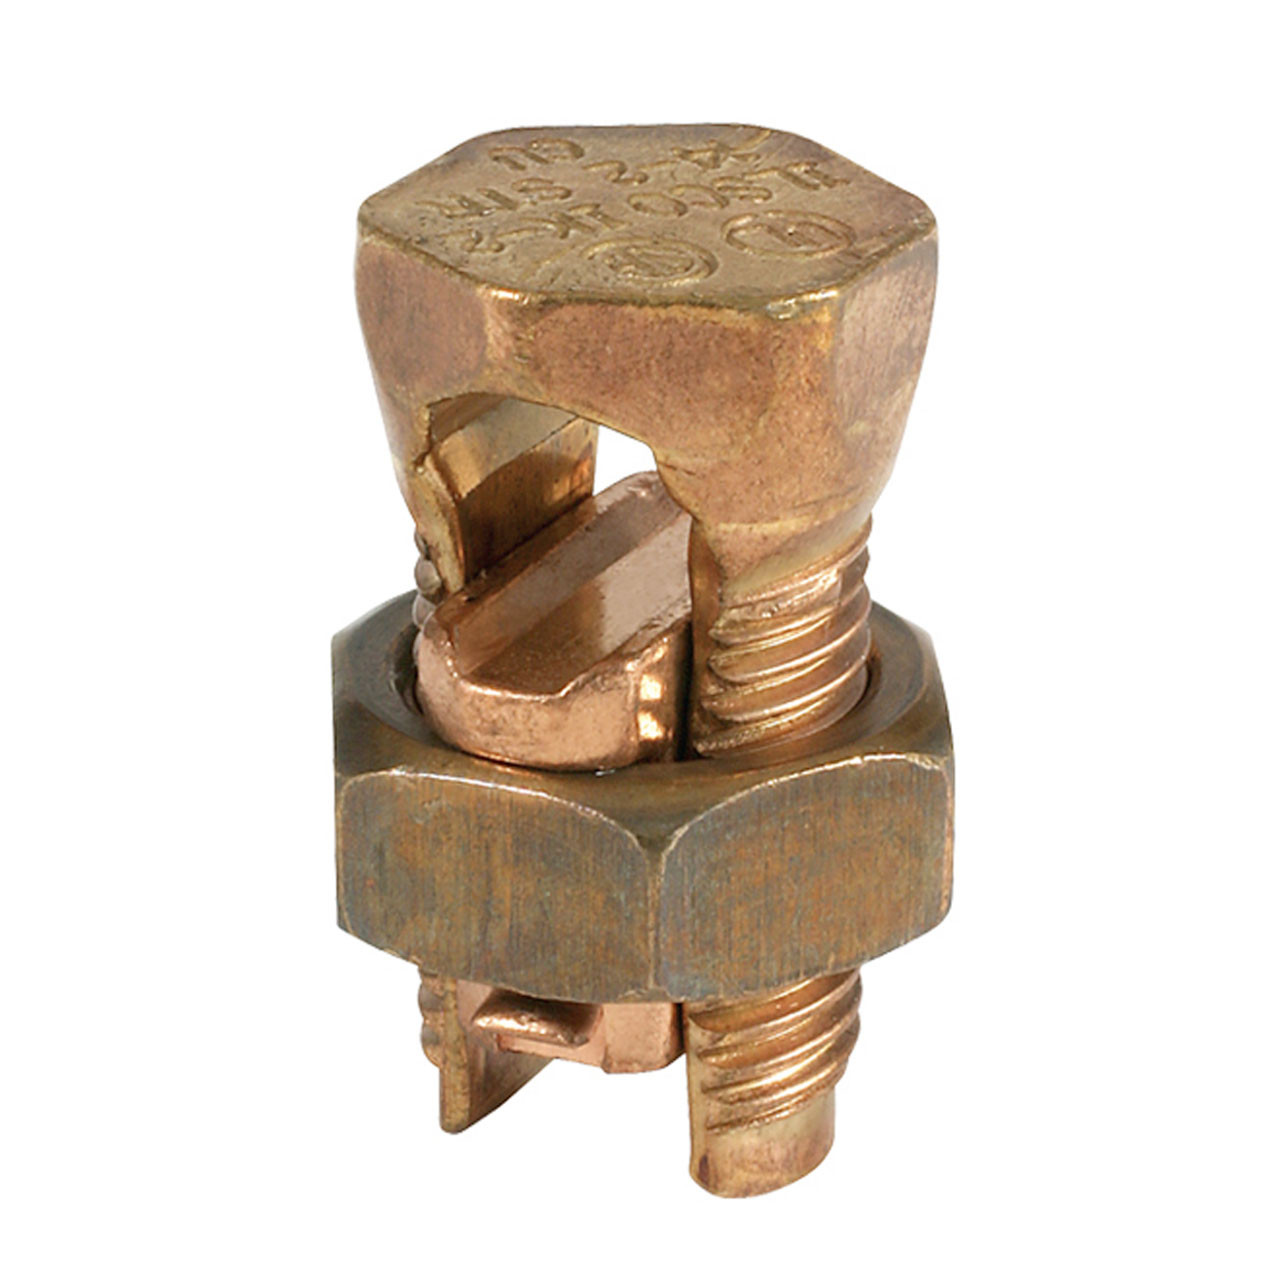 SPLIT BOLT-COPPER 1/0-14